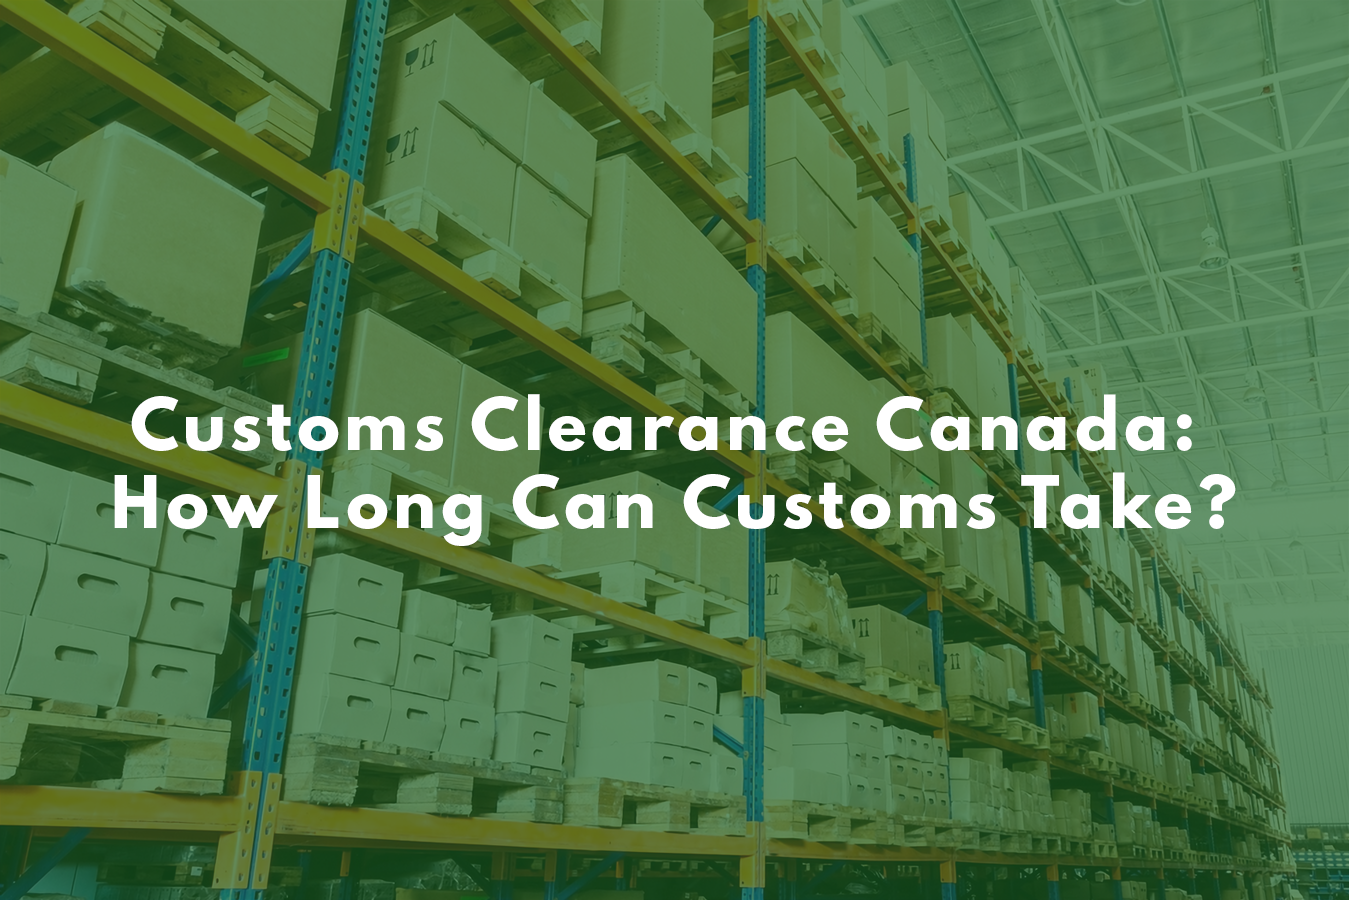 Customs Clearance Canada: How Long Can Customs Take?  